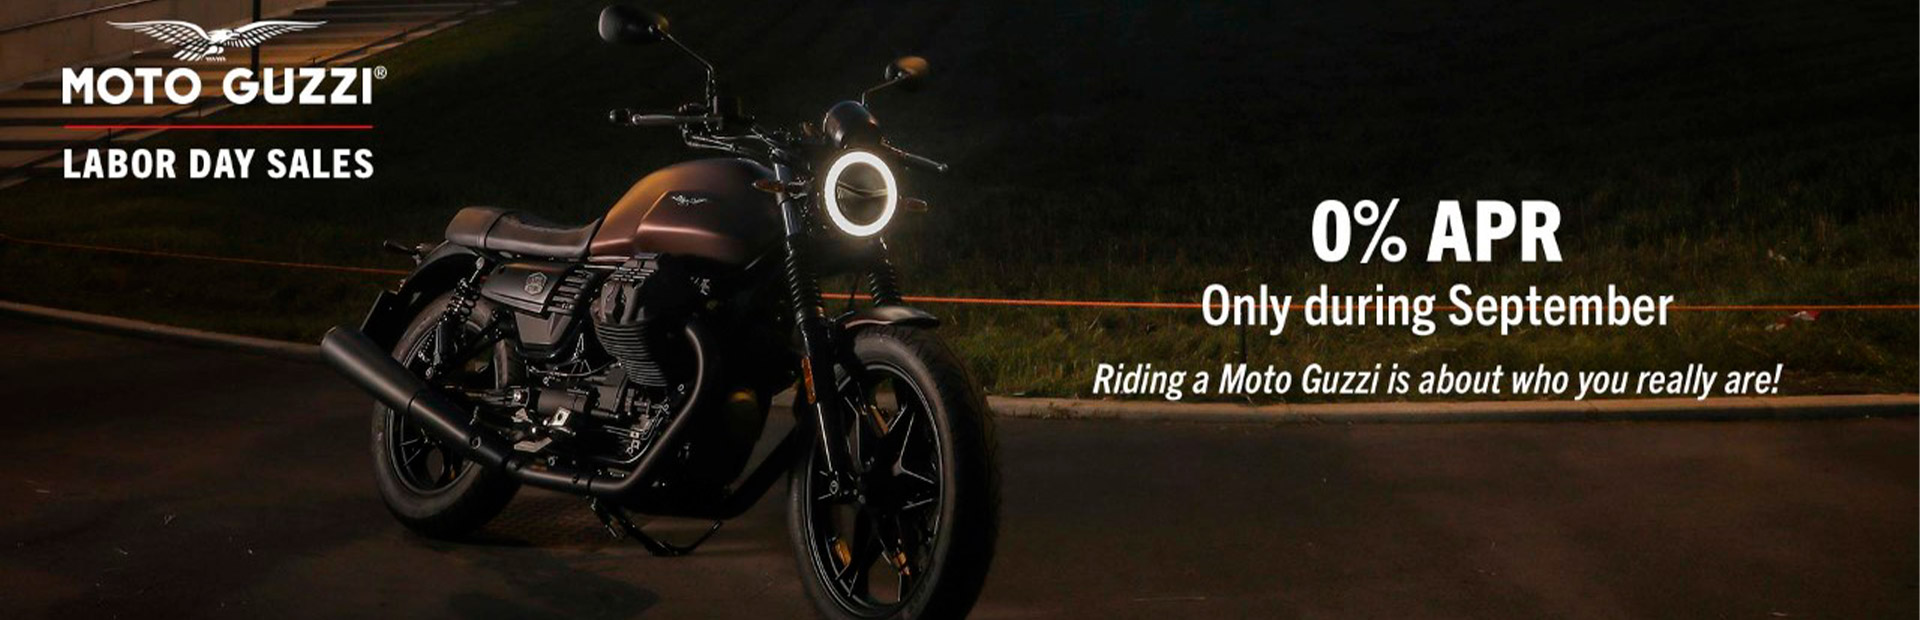 Moto Guzzi: Labor Day Sales